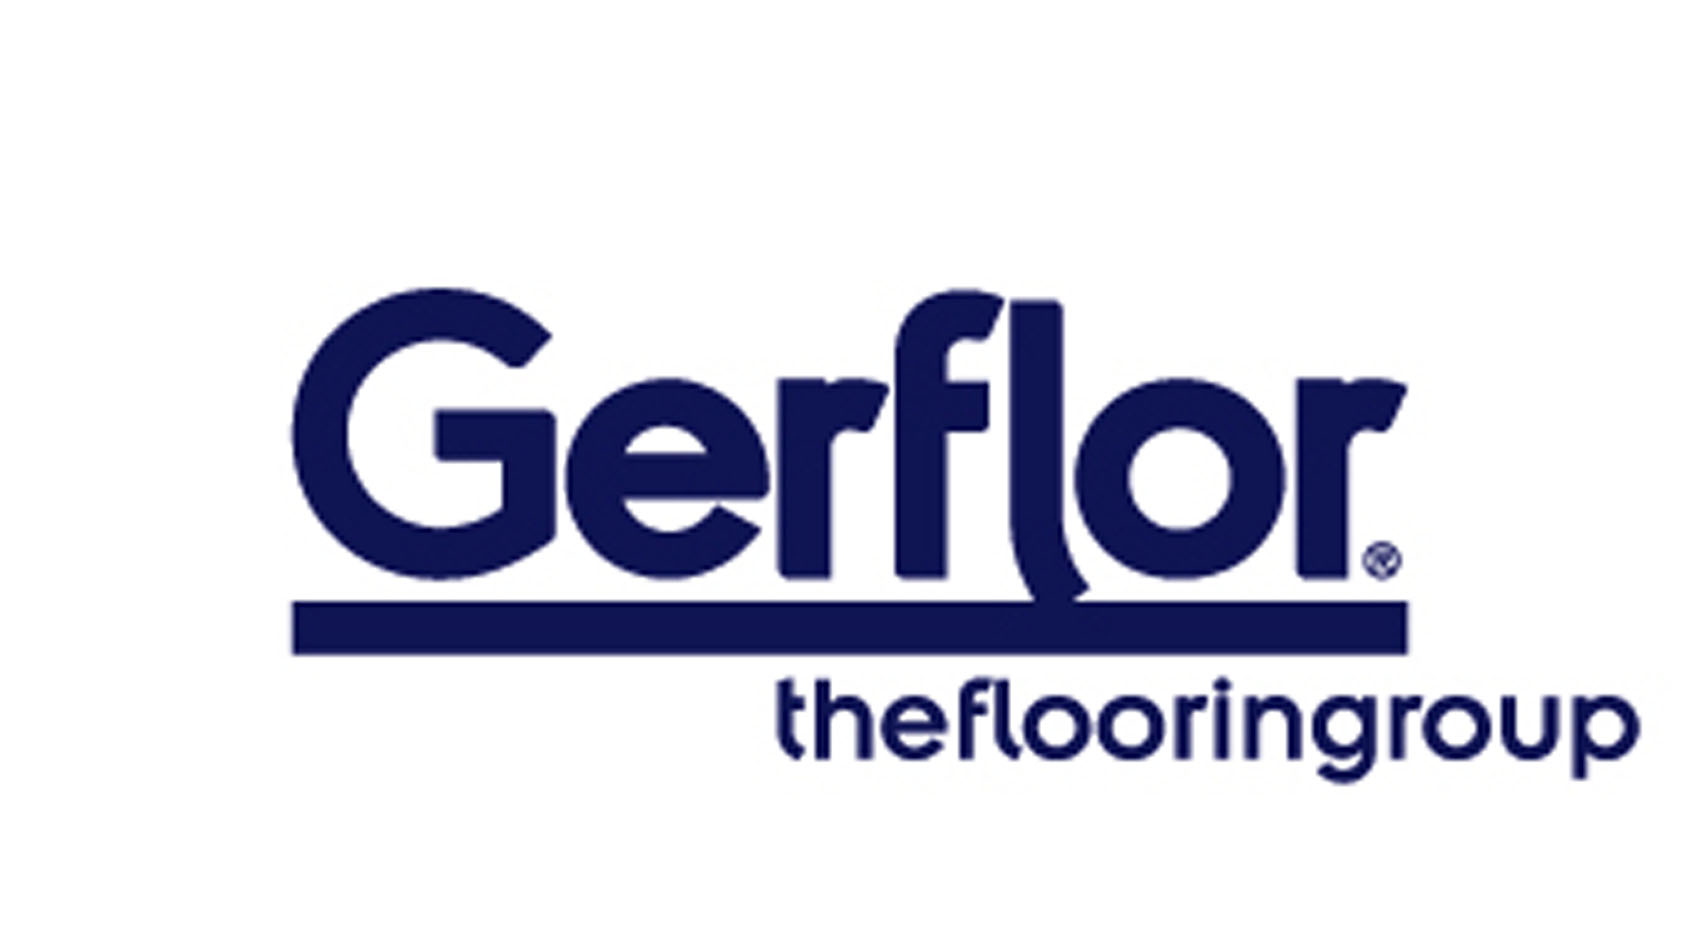 revetement sol Gerflor